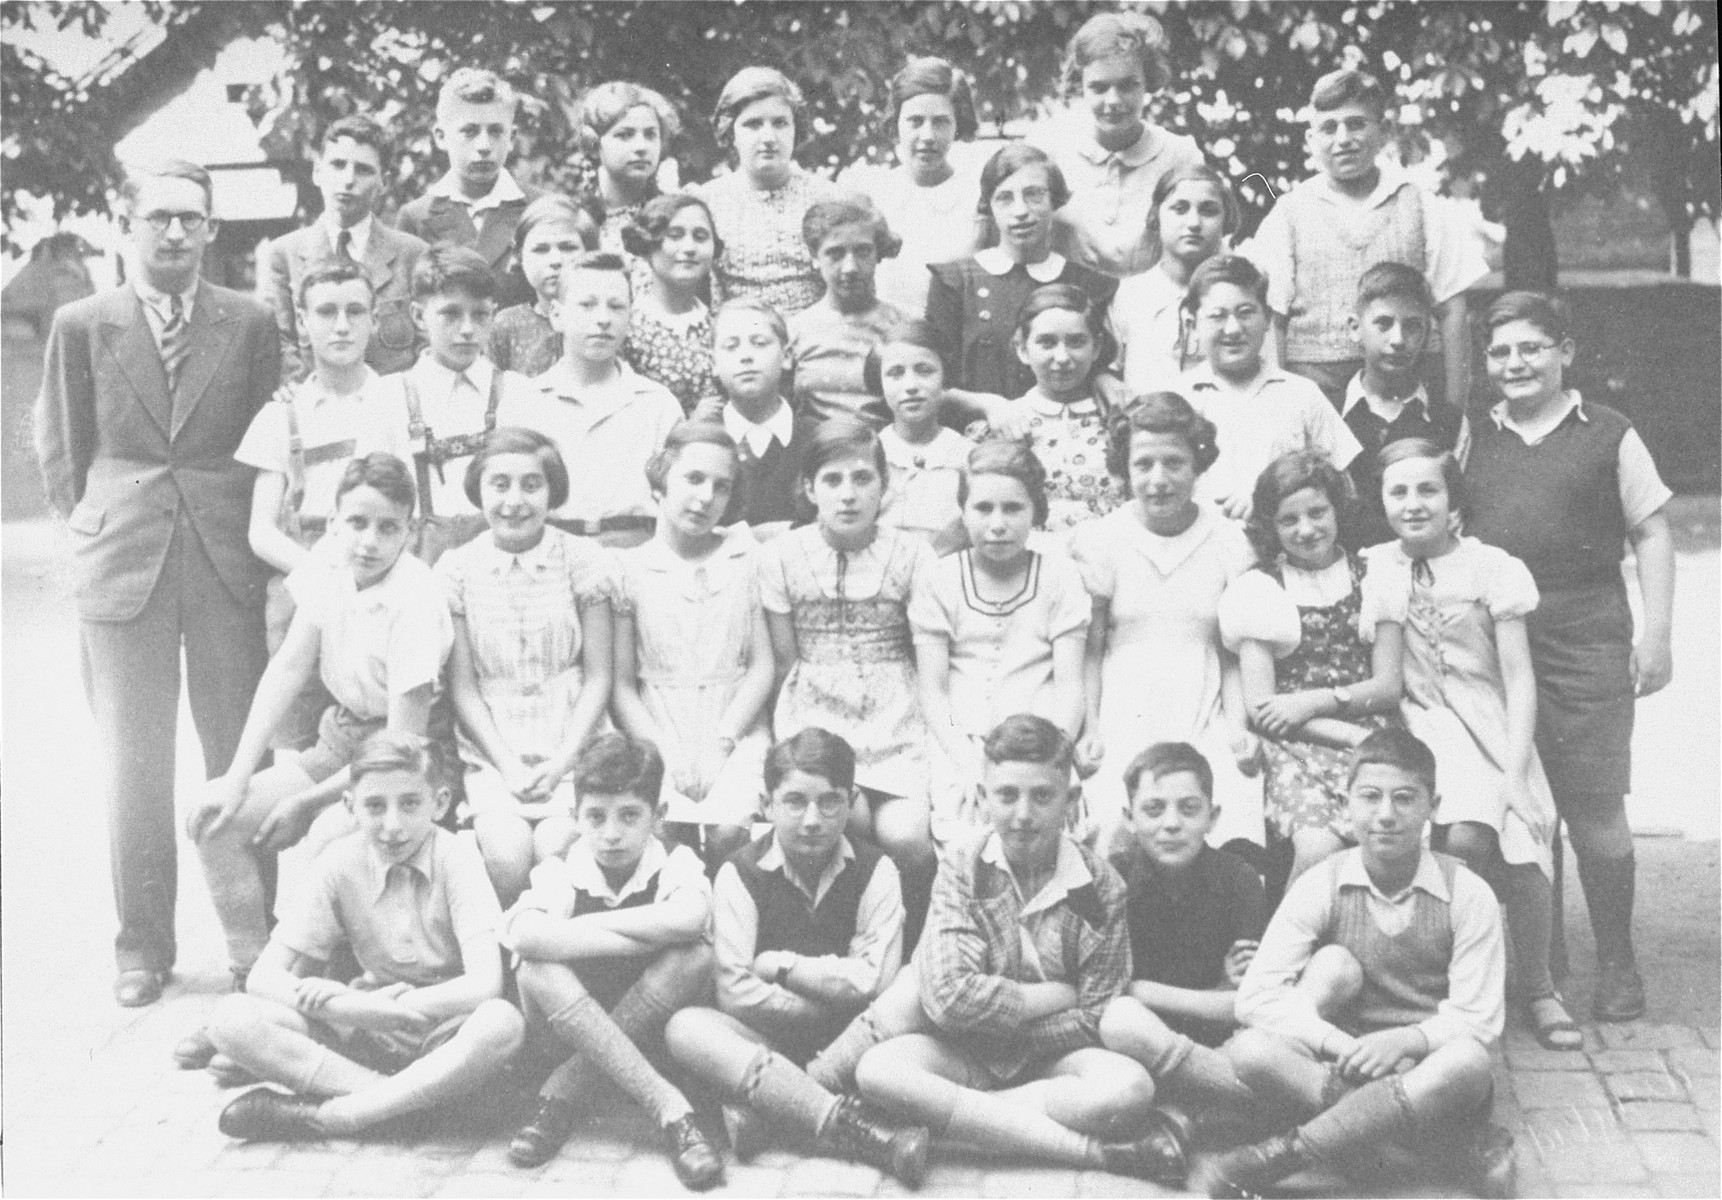 Group portrait of pupils in the seventh grade at a Jewish school in Karlsruhe, Germany that had been relocated to one floor at the 'Holzbodengymnasium' a special school for mentally disabled children.   Among those pictured is the teacher, Max Ottensoser.  Also pictured is Suse Heidenheimer (later Steinhardt),  second row from the front and the fourth girl from the right.  Louis (Ludwig) Maier is pictured in the top row, second from the left.  Julius Hirschberger is on the borttom row, far right and Walter Baer is in the third row, third from the left.